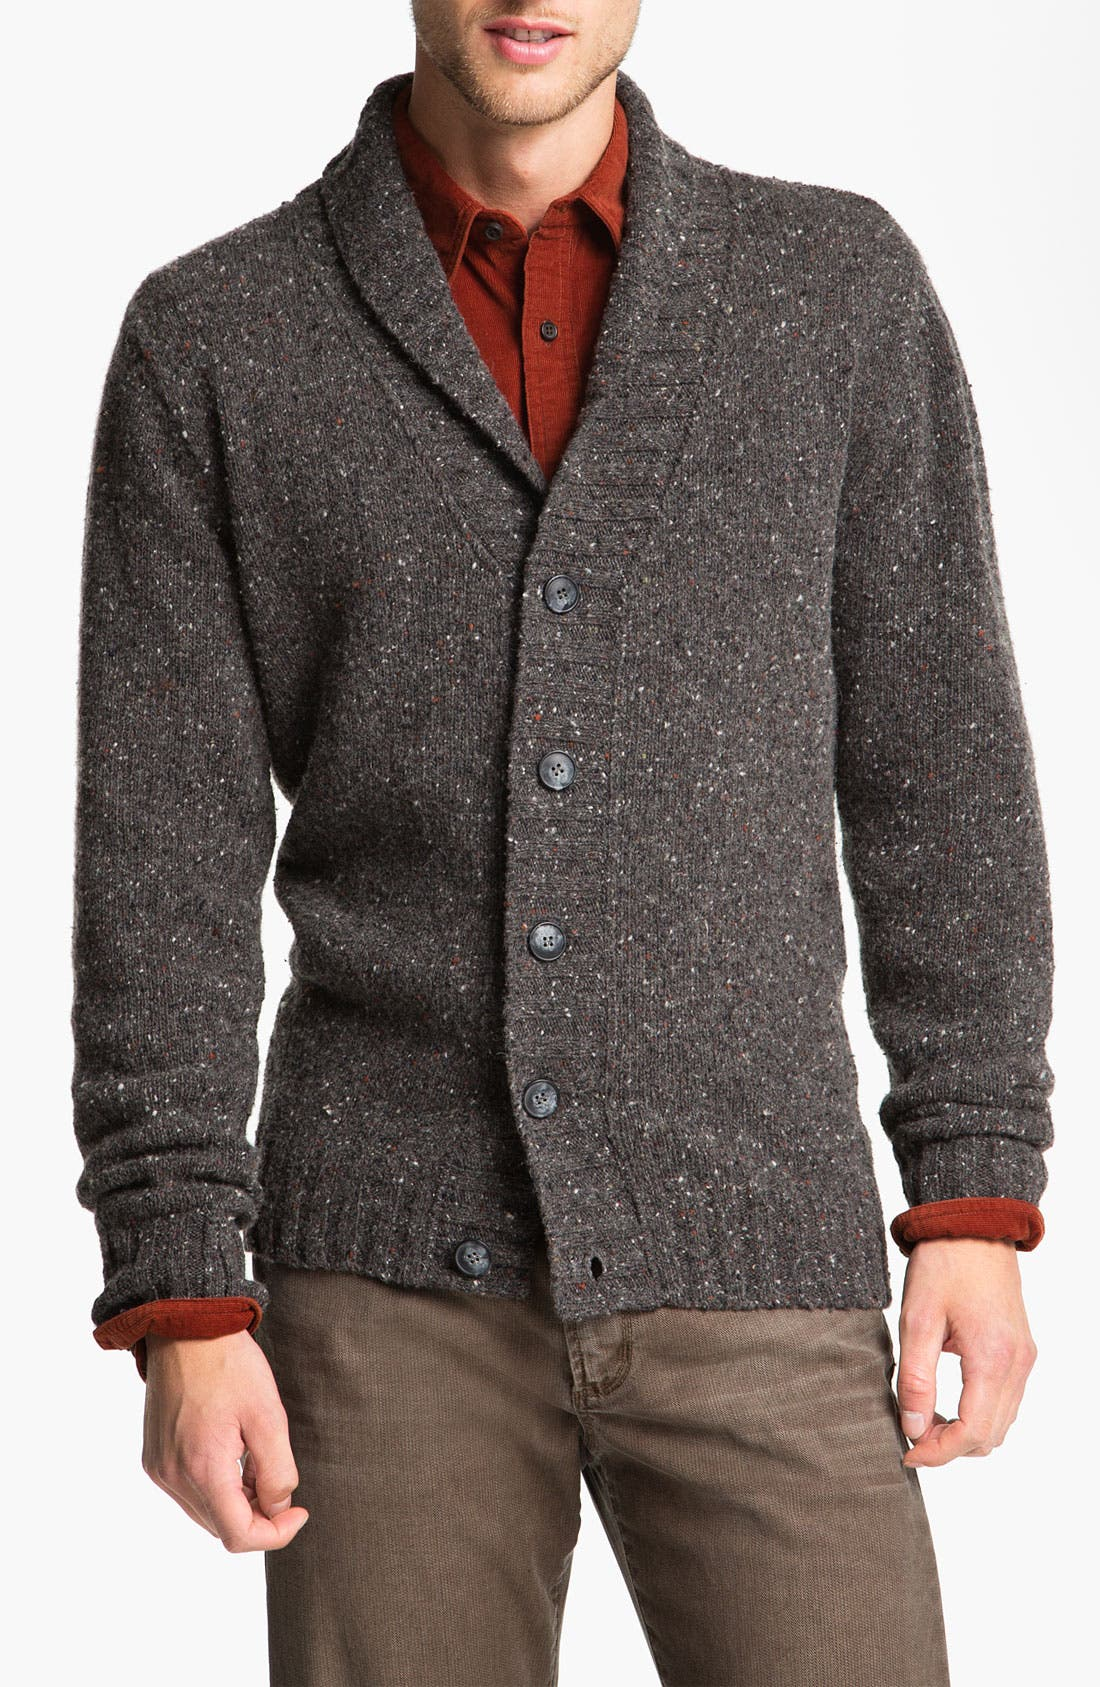 Alternate Image 1 Selected - Fiesole Shawl Collar Wool Blend Cardigan